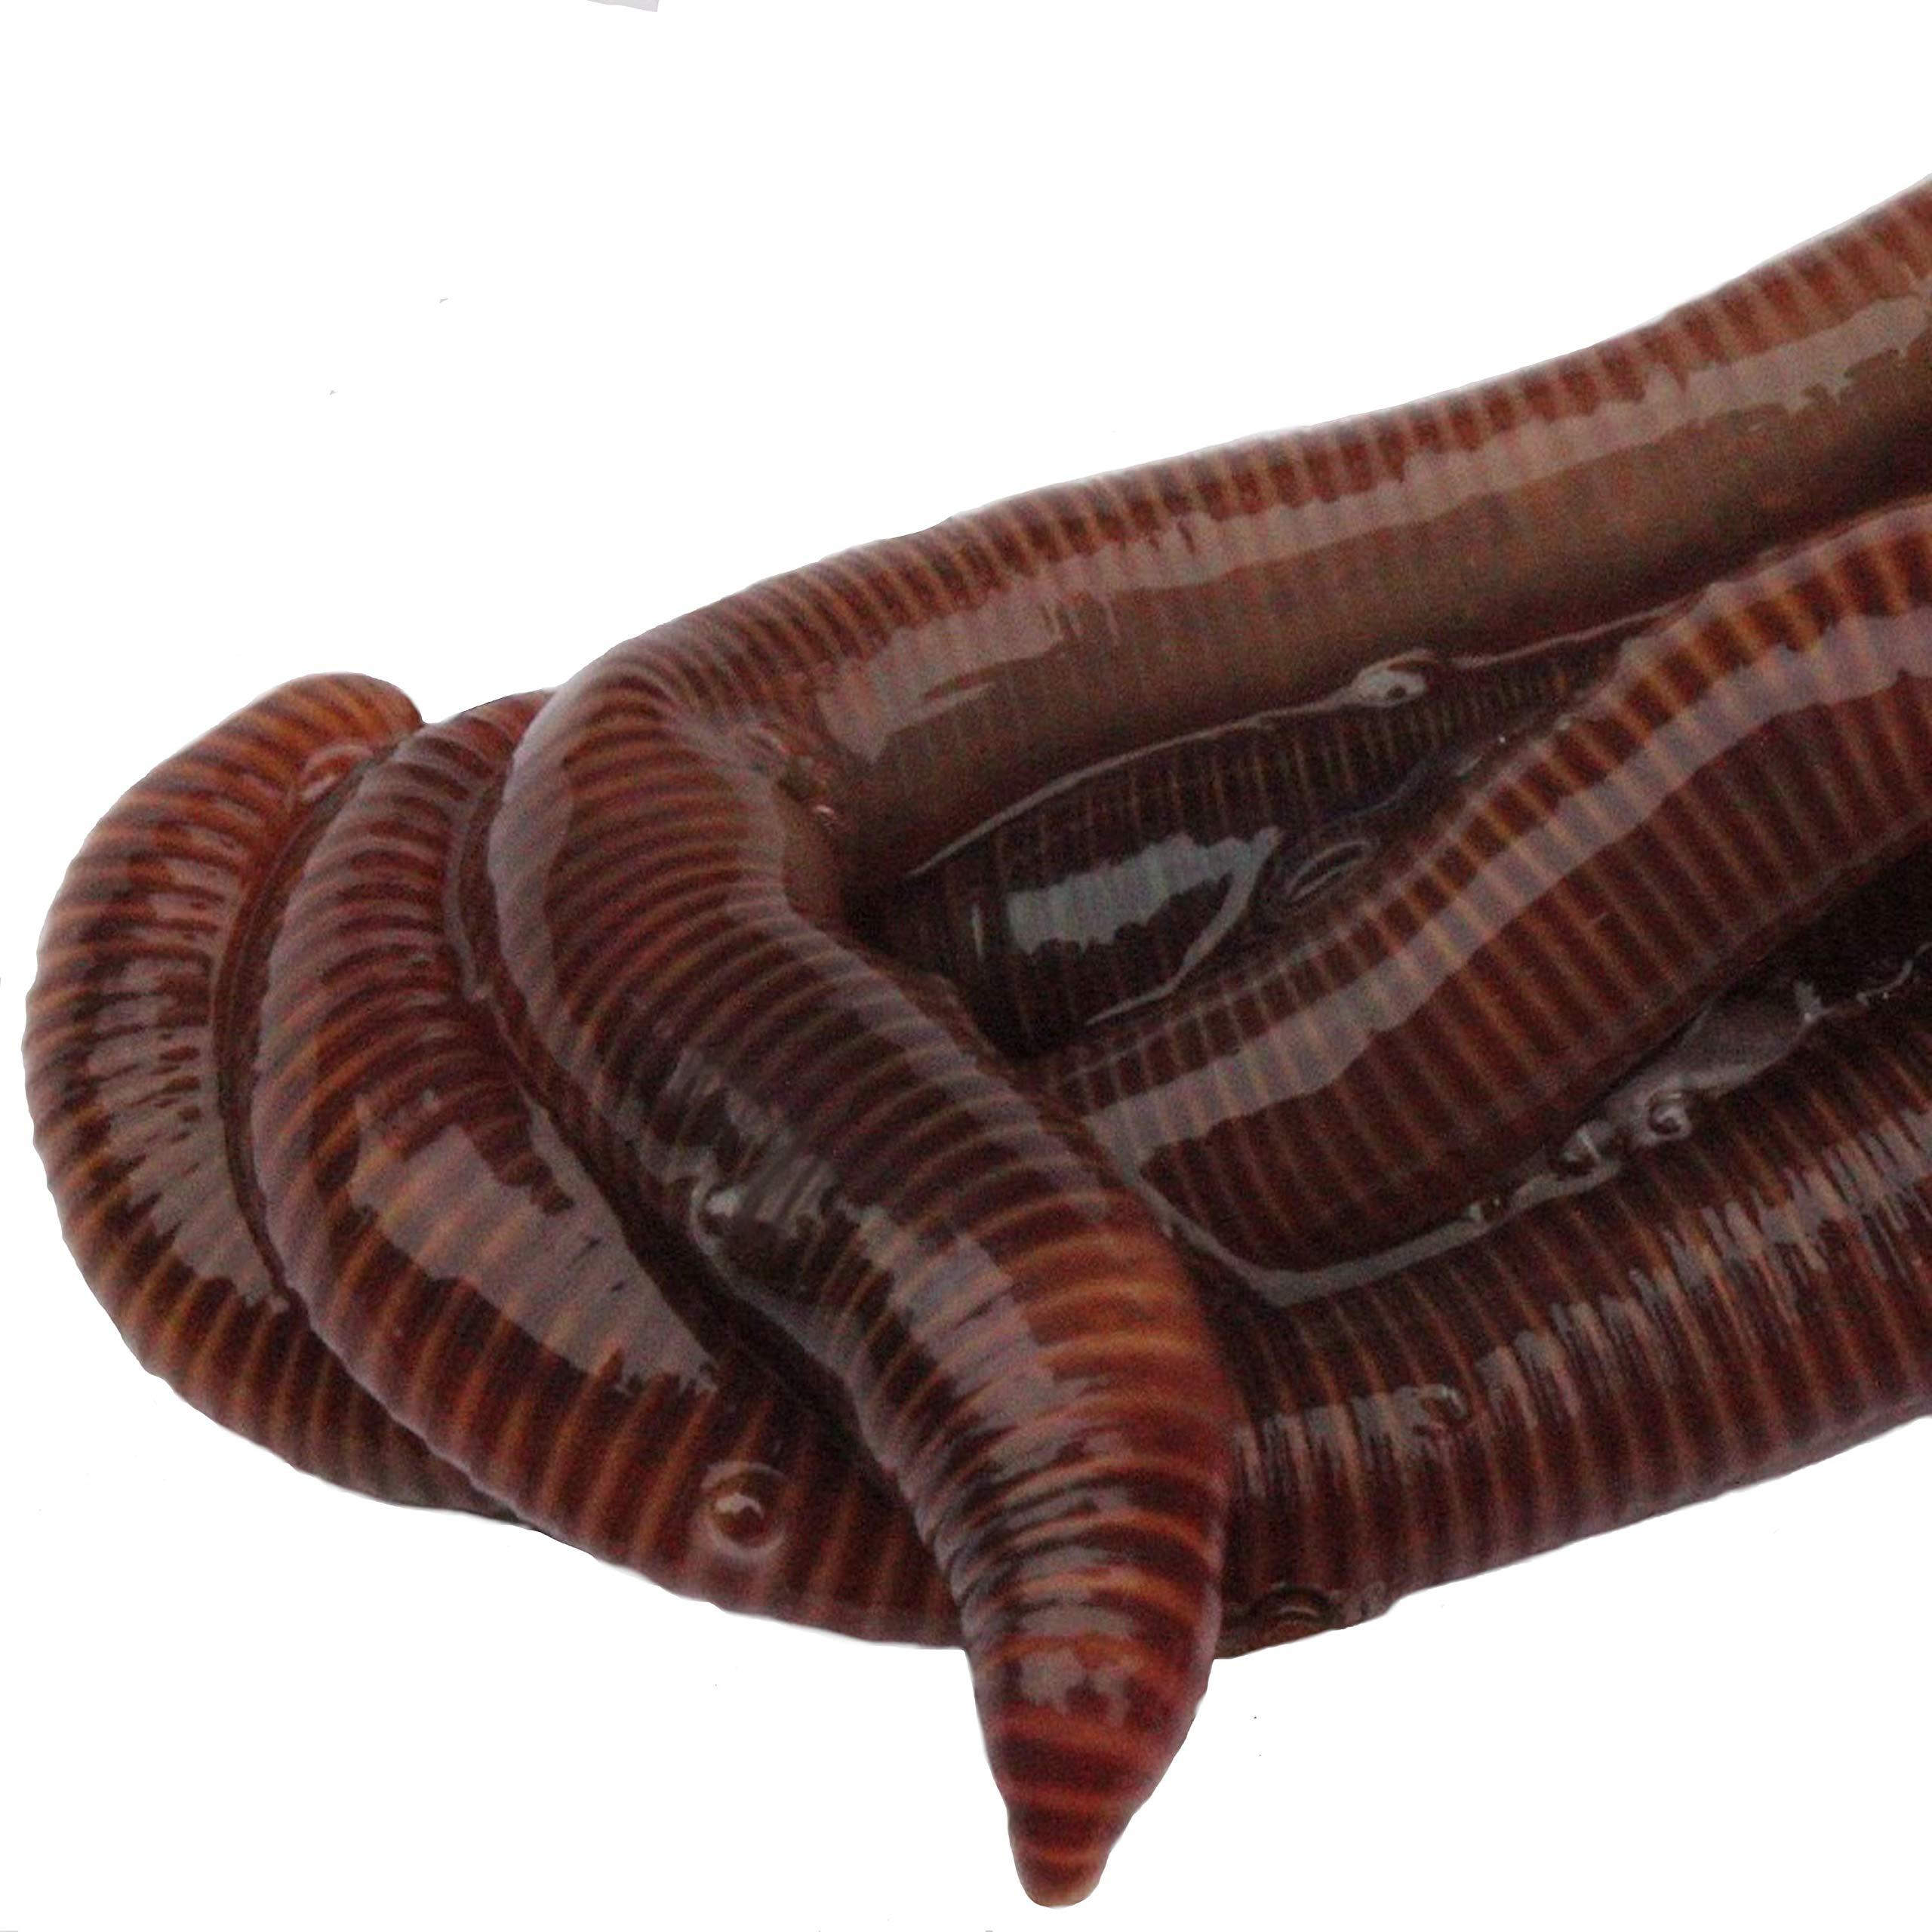 HomeGrownWorms - 500 Red Wigglers - Composting Red Worms - Live Delivery Guaranteed - Same Day Shipping!!! - Vermicomposting Garden Red Wrigglers - Eisenia Fetida by HomeGrownWorms.com